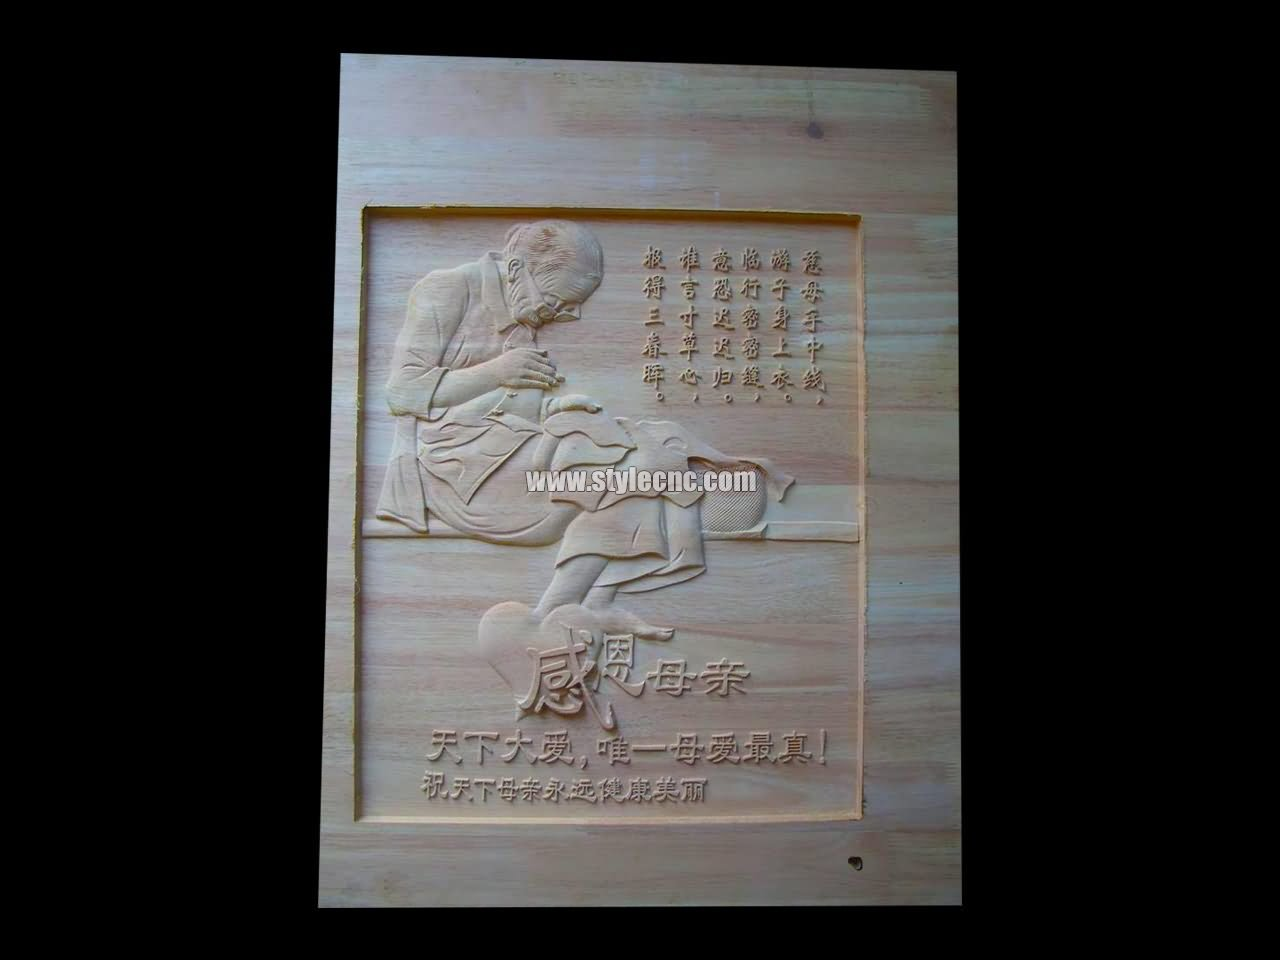 Wood plaque arts relief carving project